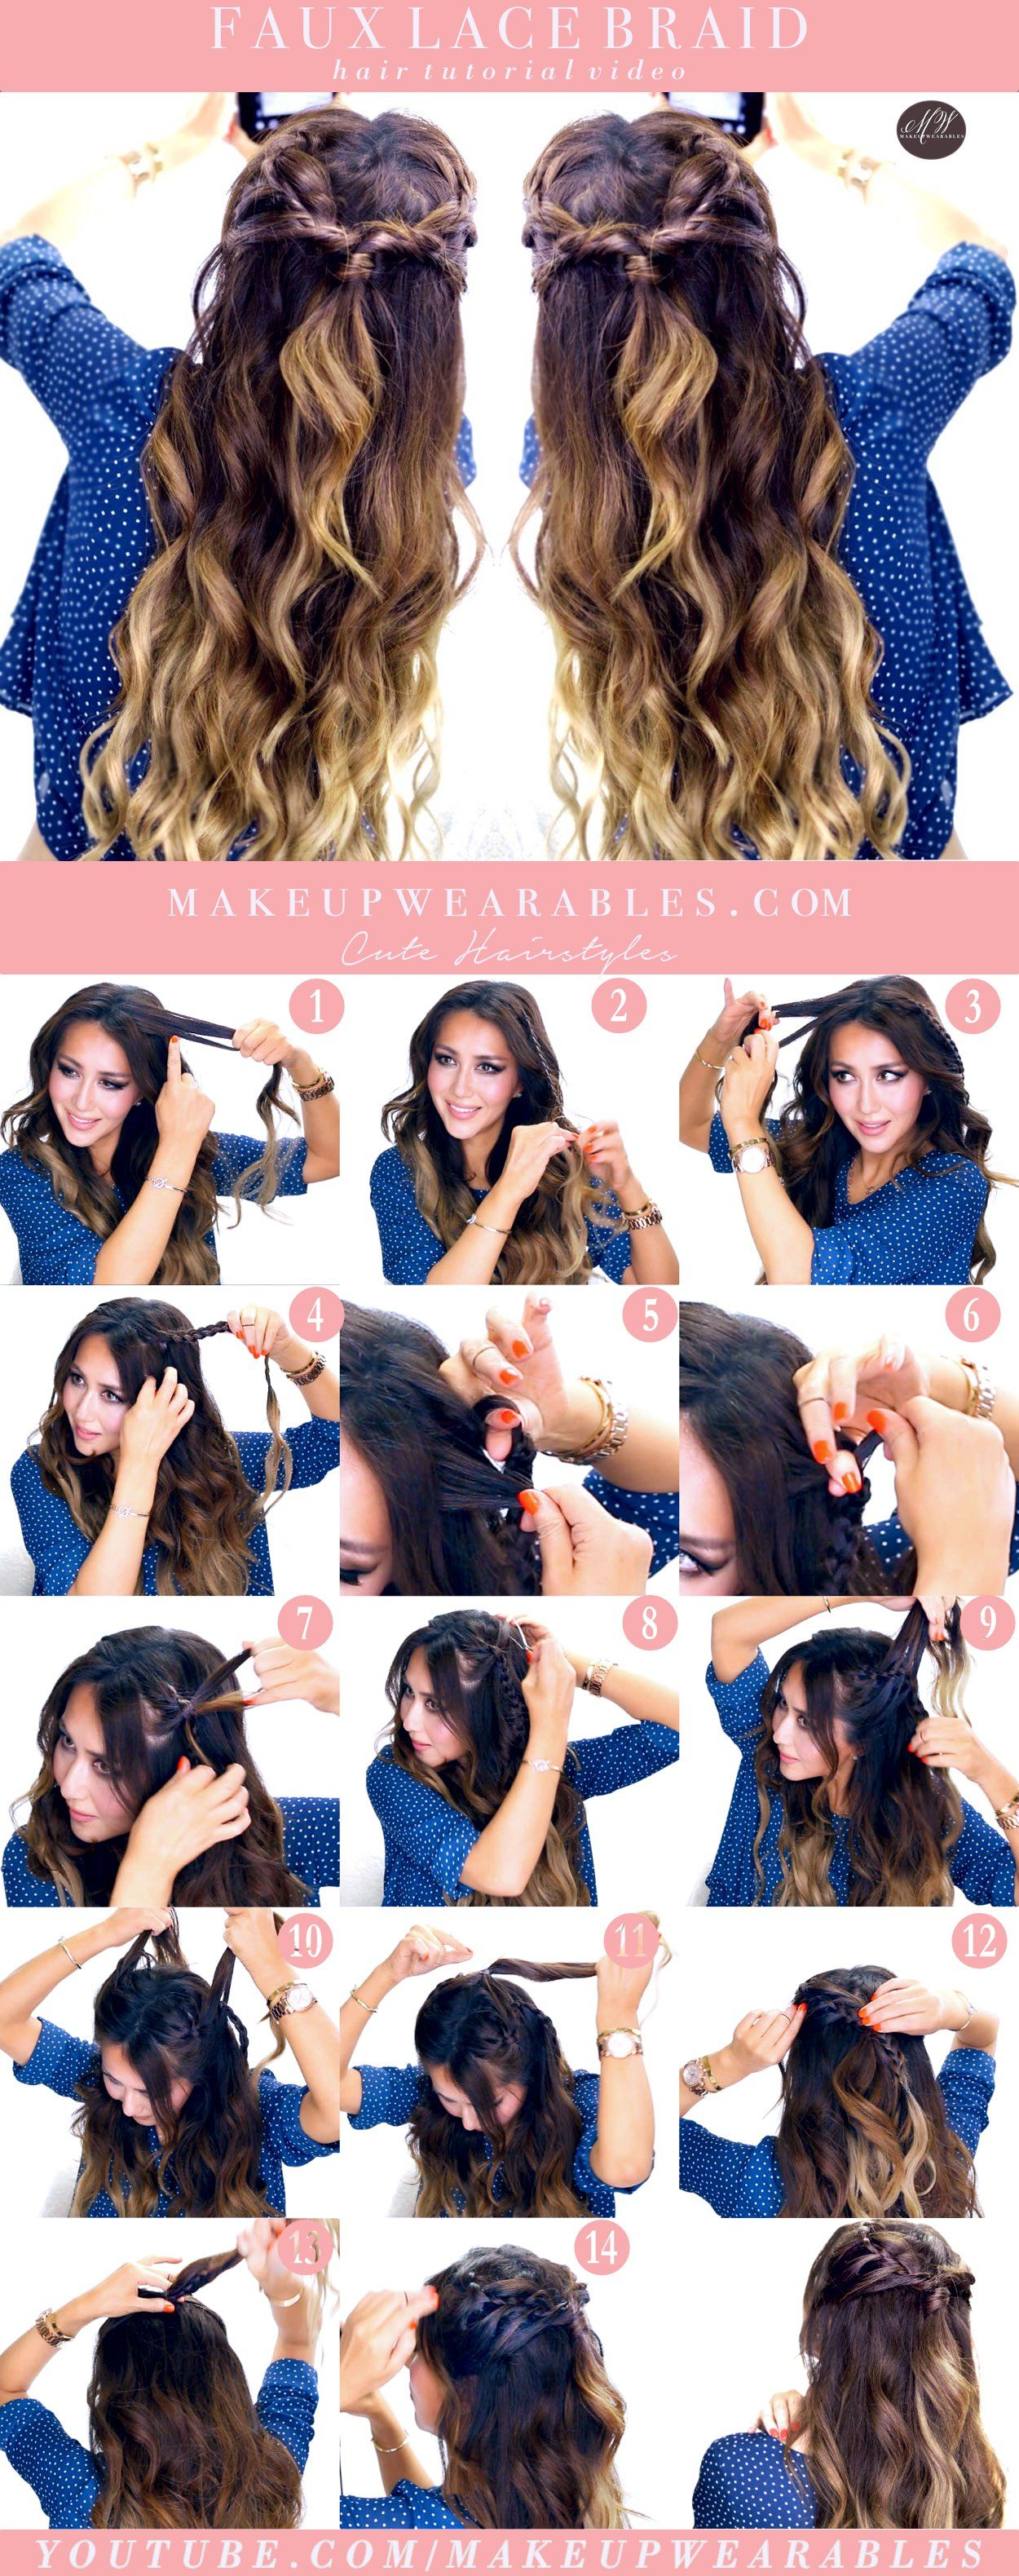 Minute easy spring hairstyles fake a lace headband braid hair